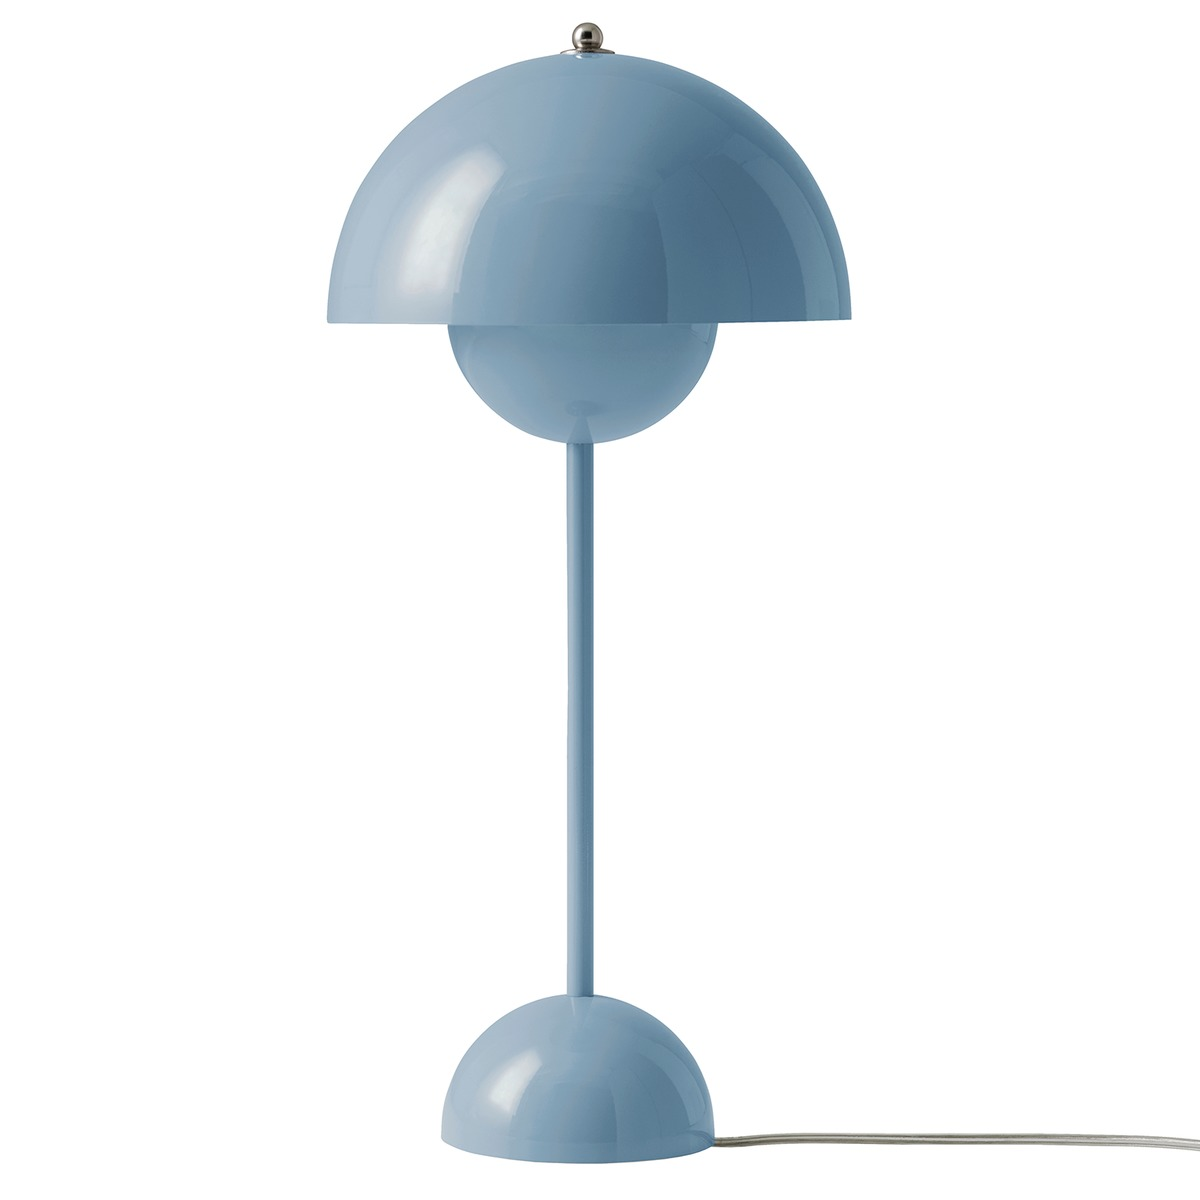 &Tradition Flowerpot VP3 table lamp, light blue from &Tradition